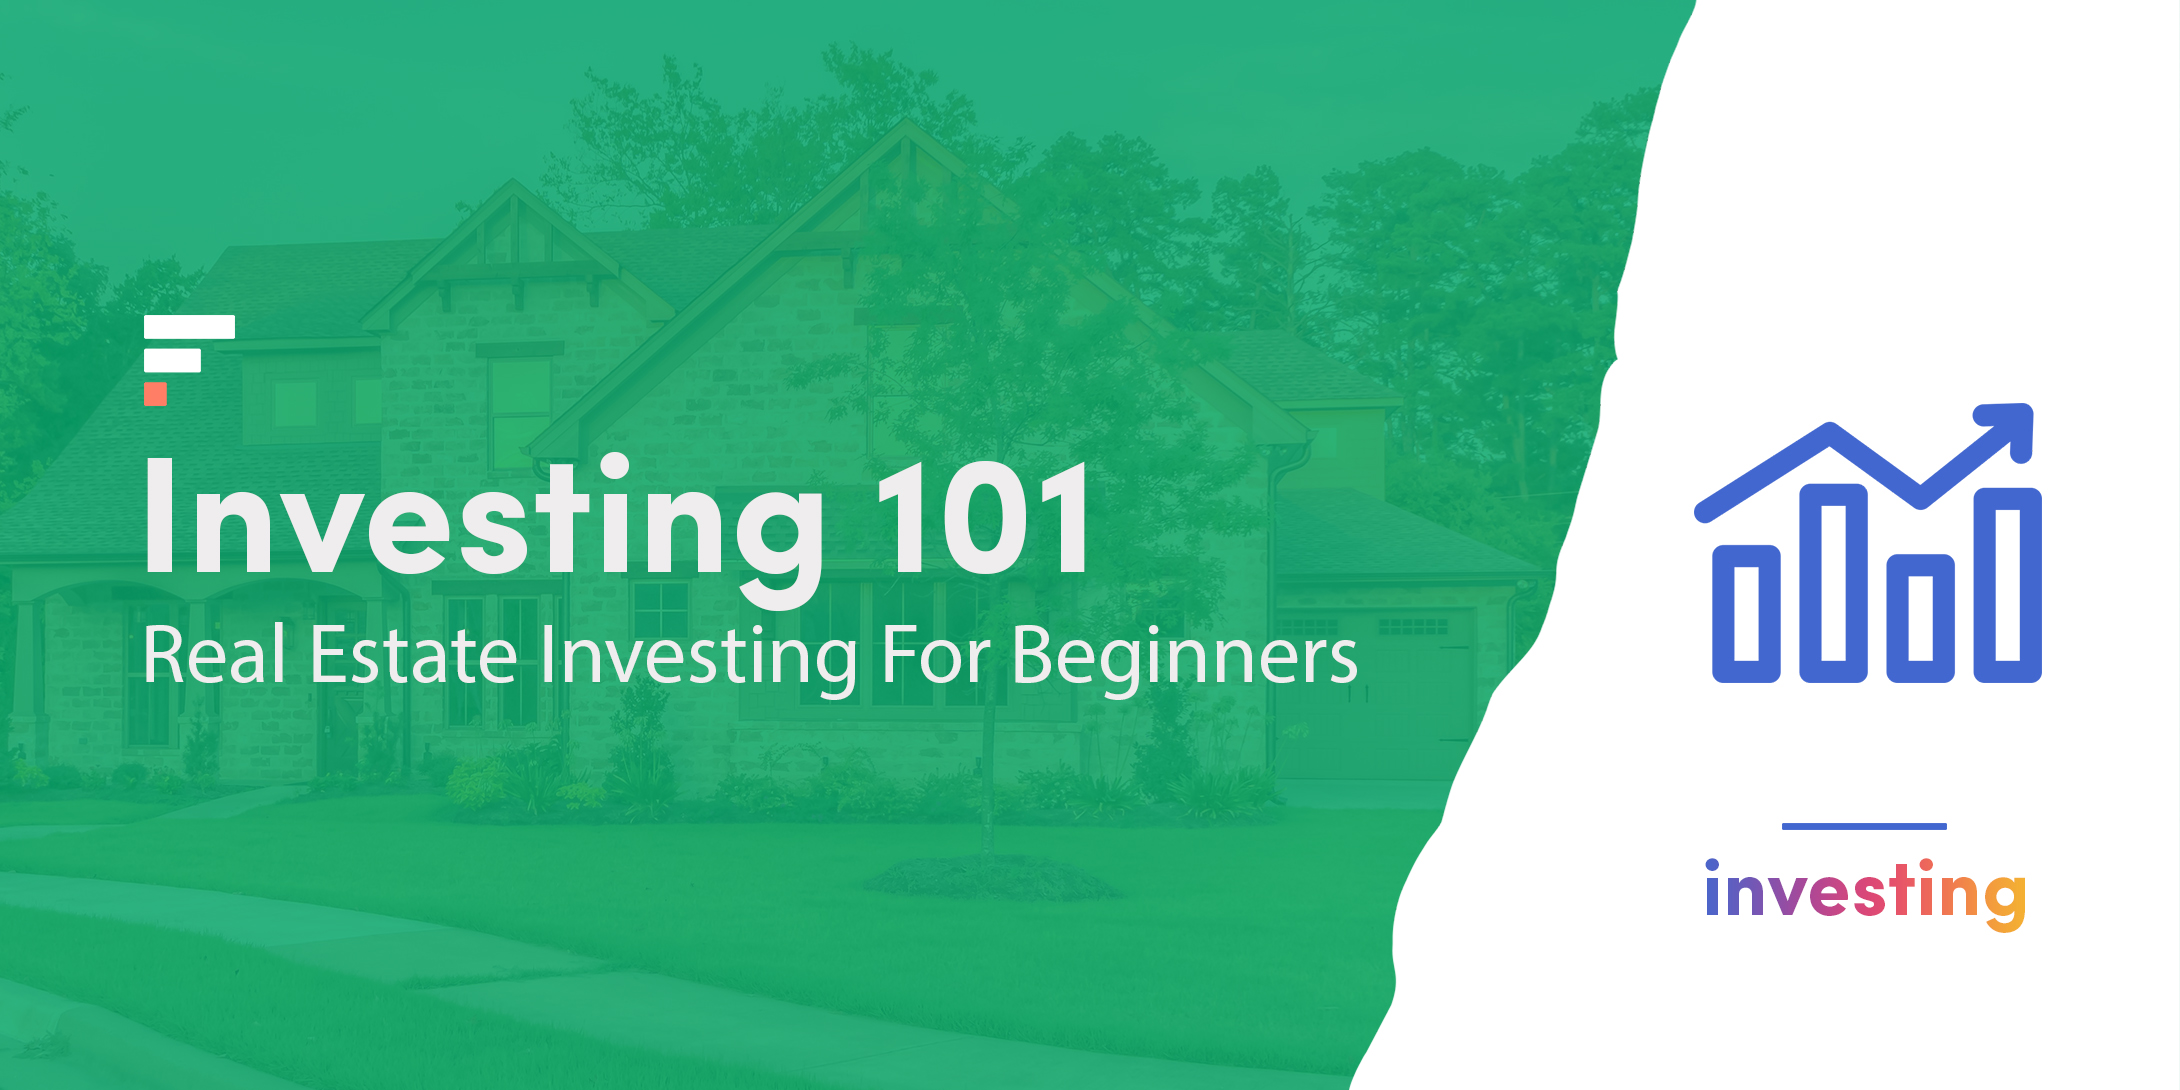 Investing 101: Real Estate Investing For Beginners